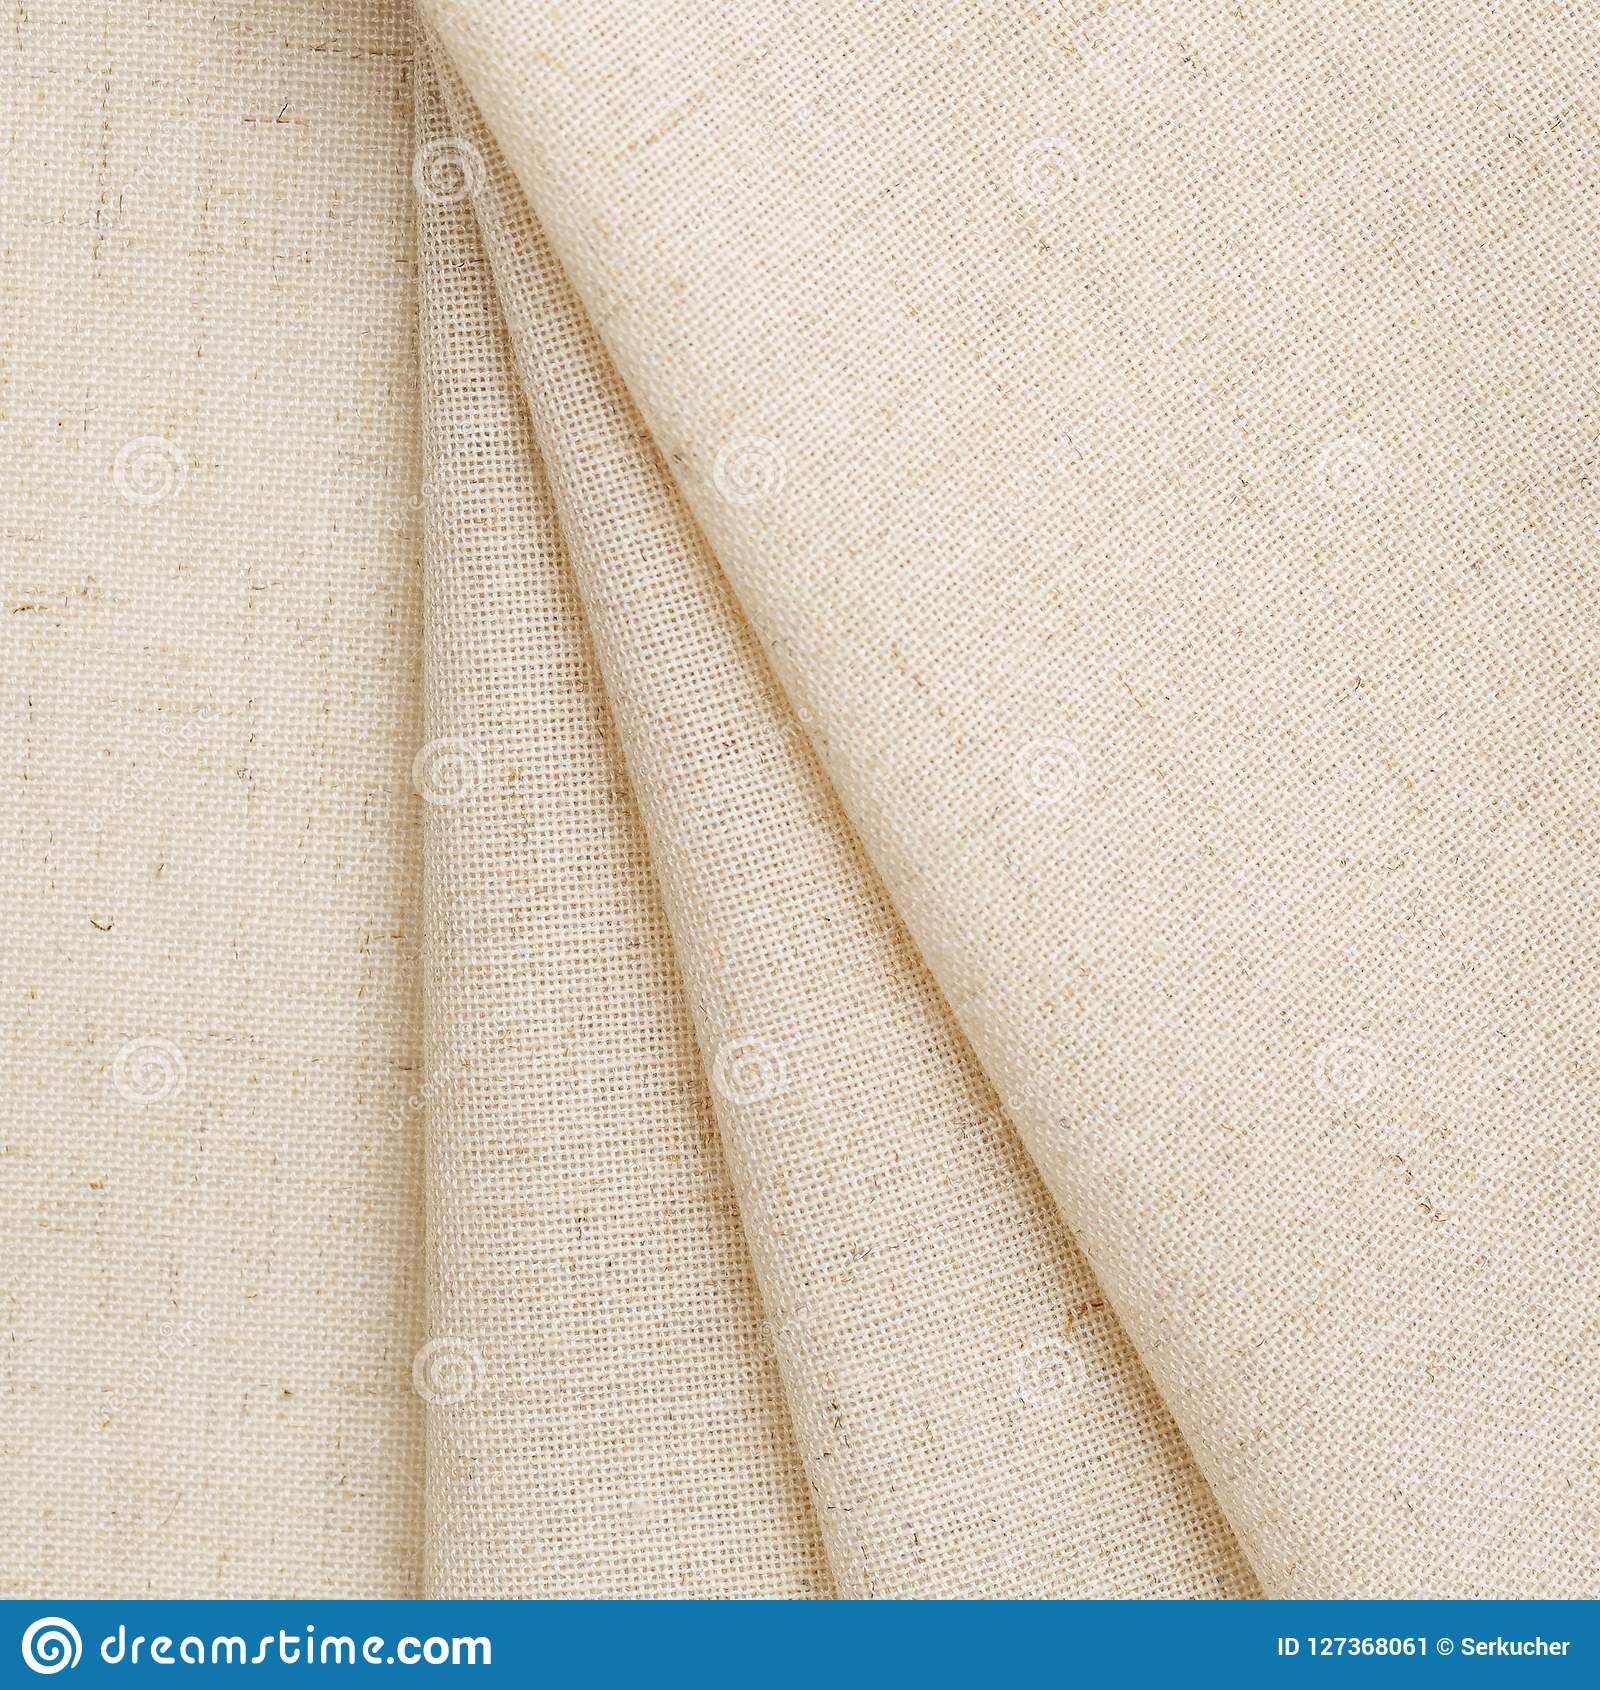 Soft Linen Fabric For Clothing  Background With Natural